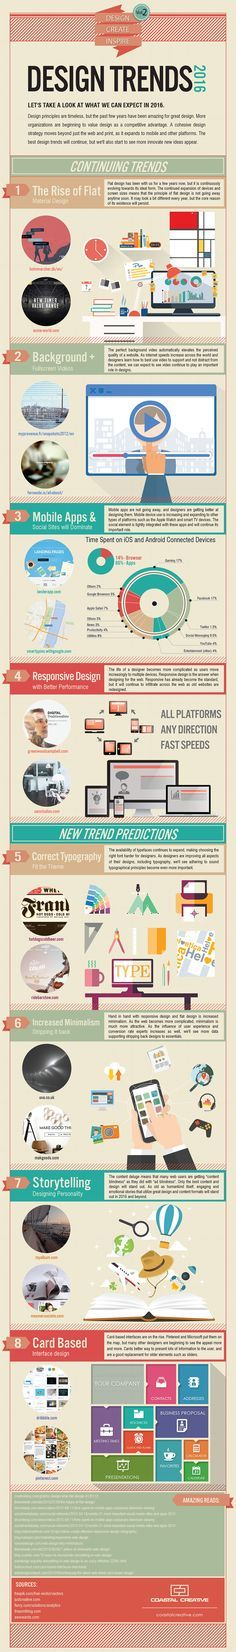 8 #WebDesign Trends That Are Bound to Be Huge in 2016 [#infographic]